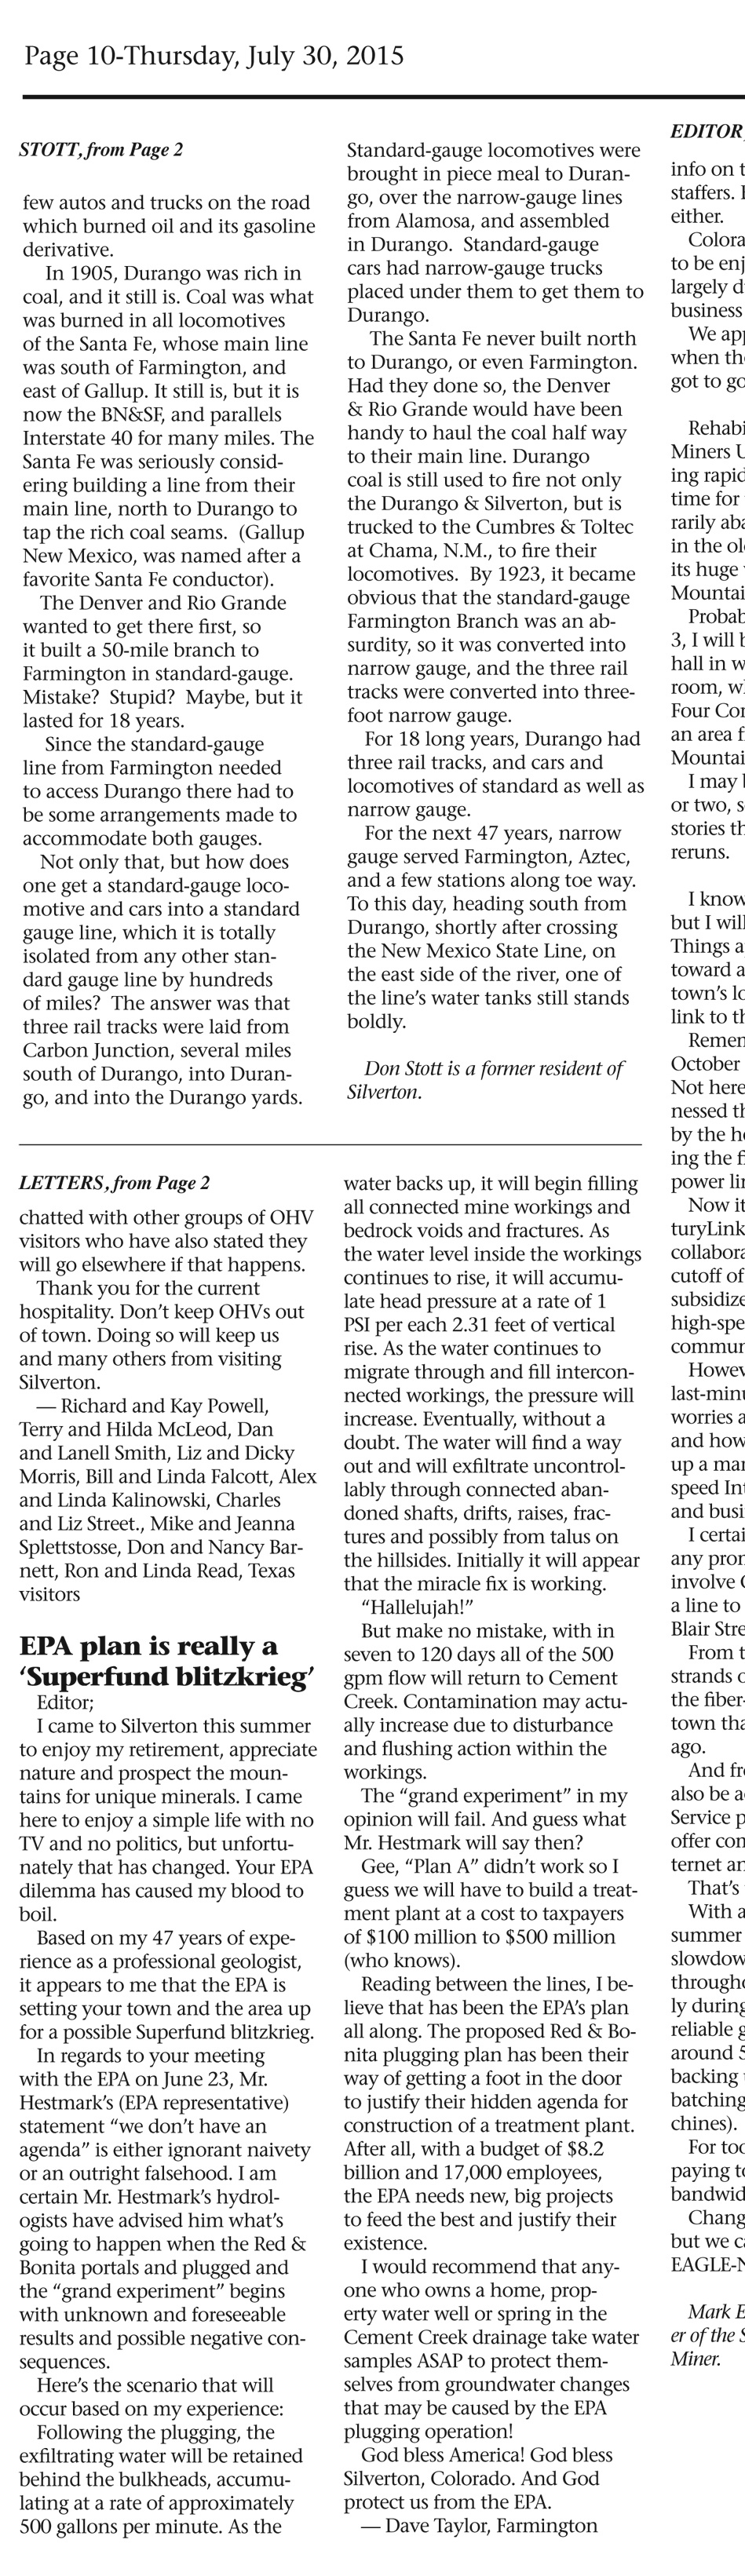 https://i1.wp.com/www.thegatewaypundit.com/wp-content/uploads/editorial-colorado-epa.jpg